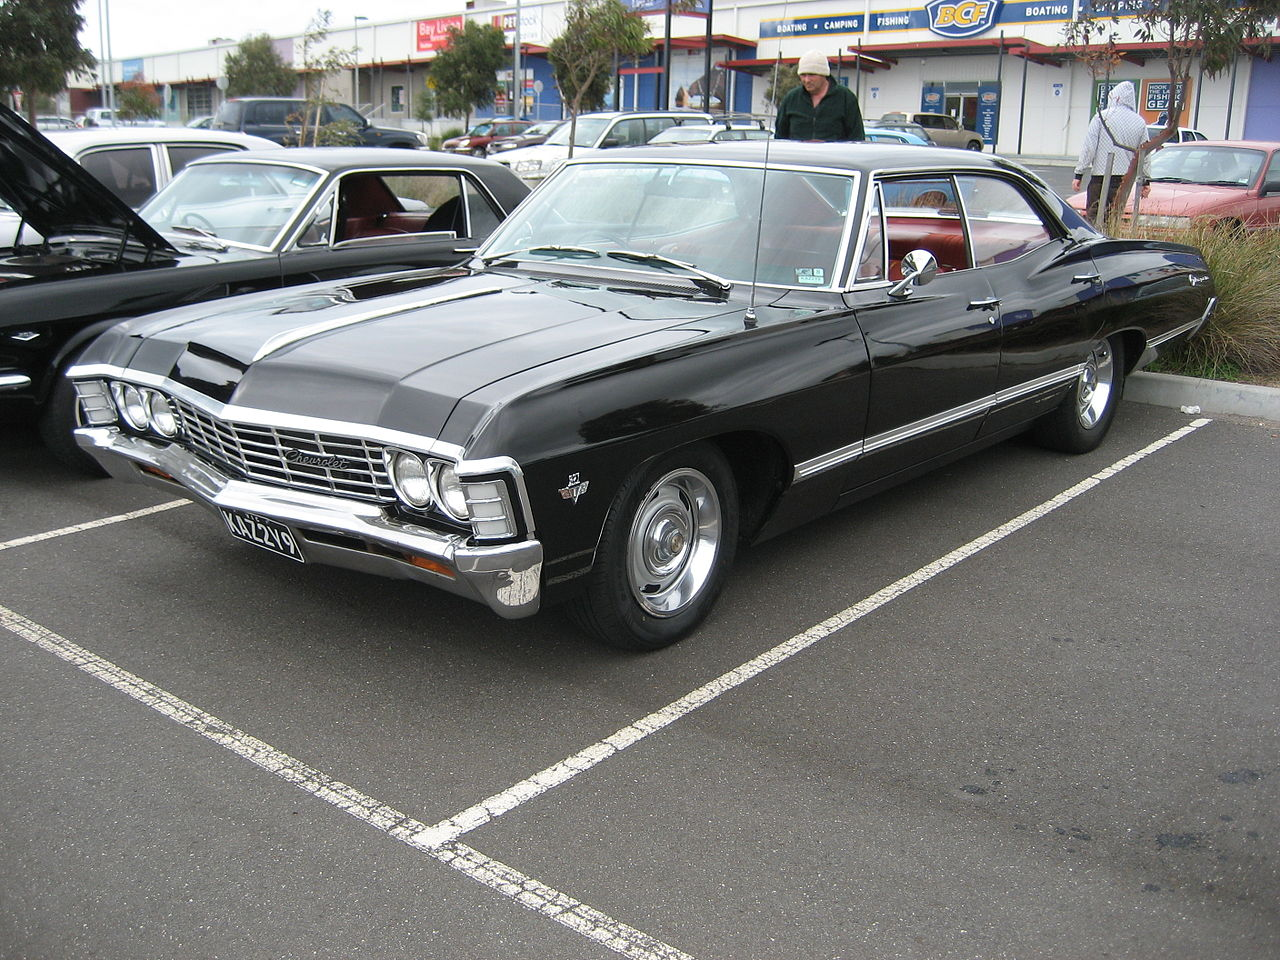 File 1967 Chevrolet Impala 4 door Hardtop on 1967 chevelle malibu